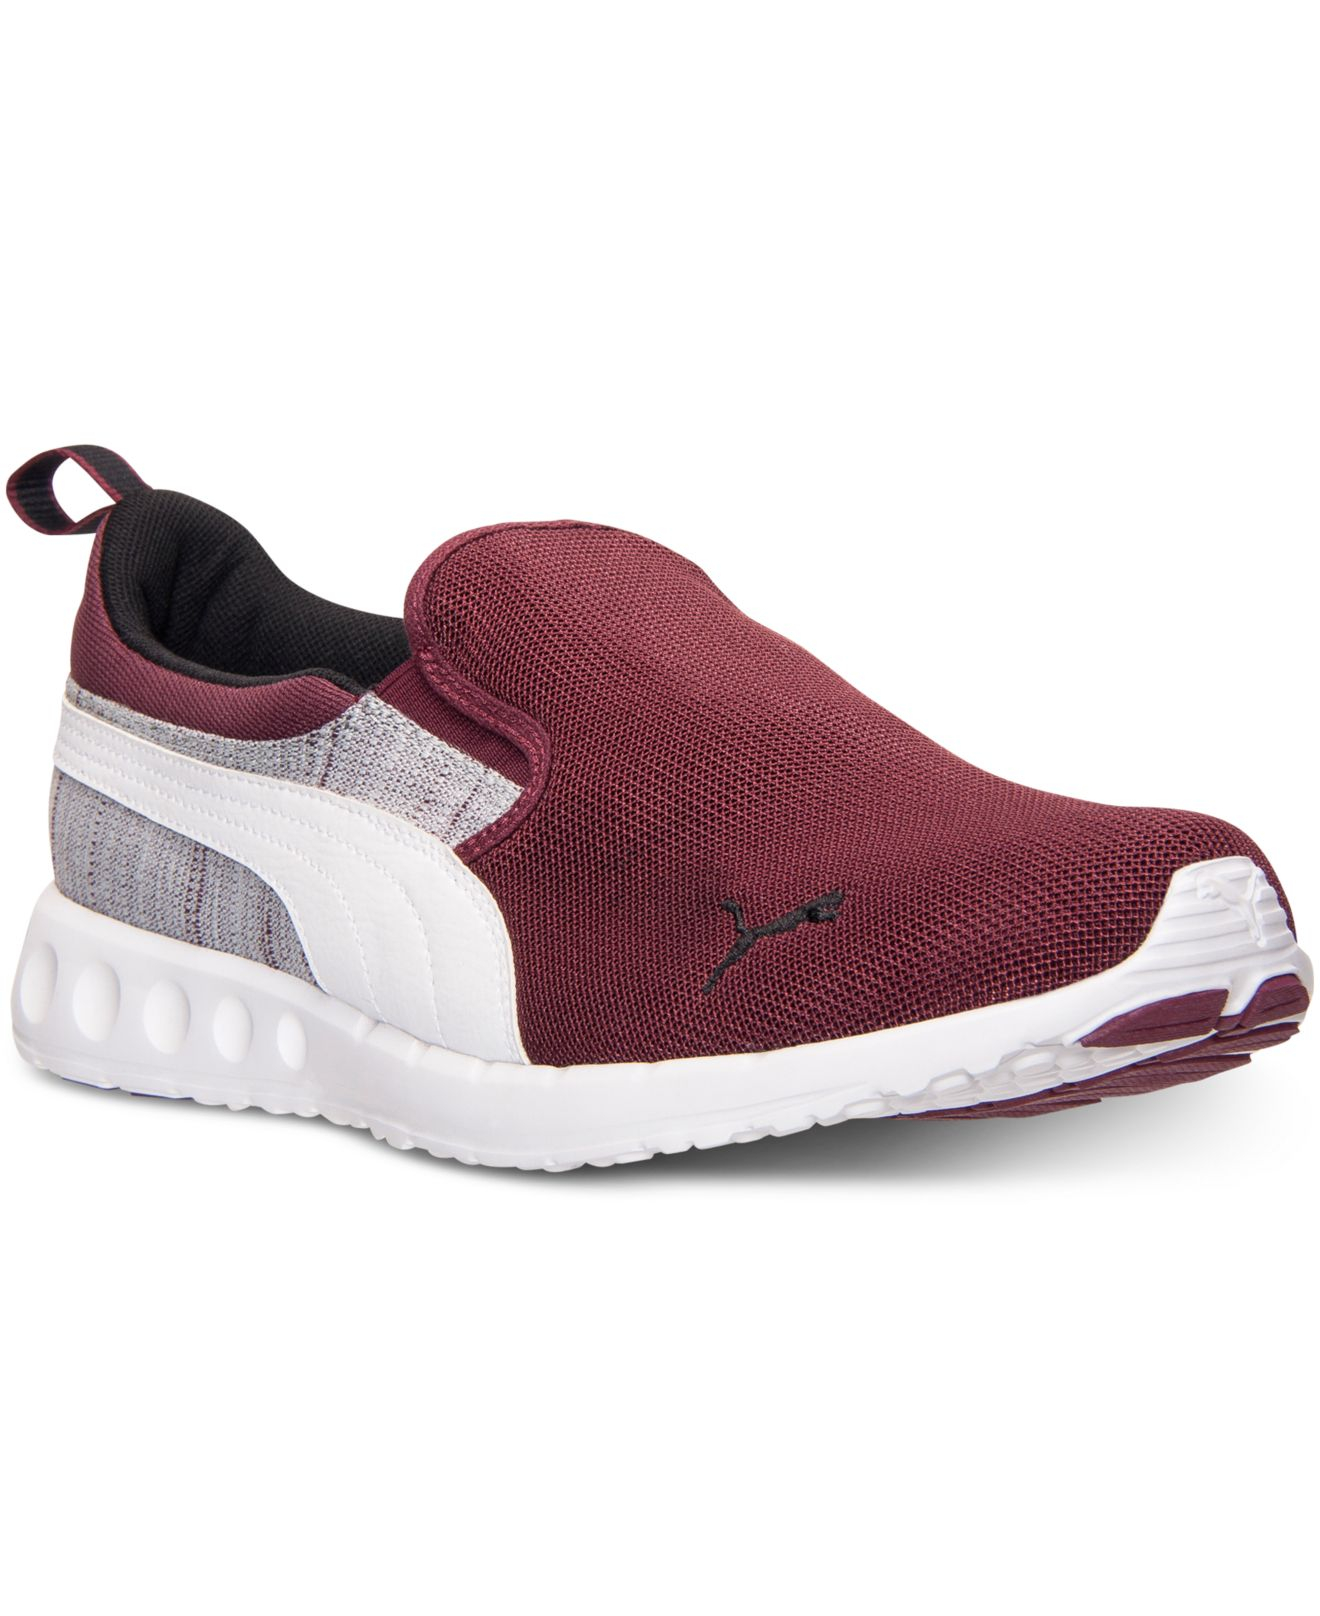 Carson S Athletic Shoes